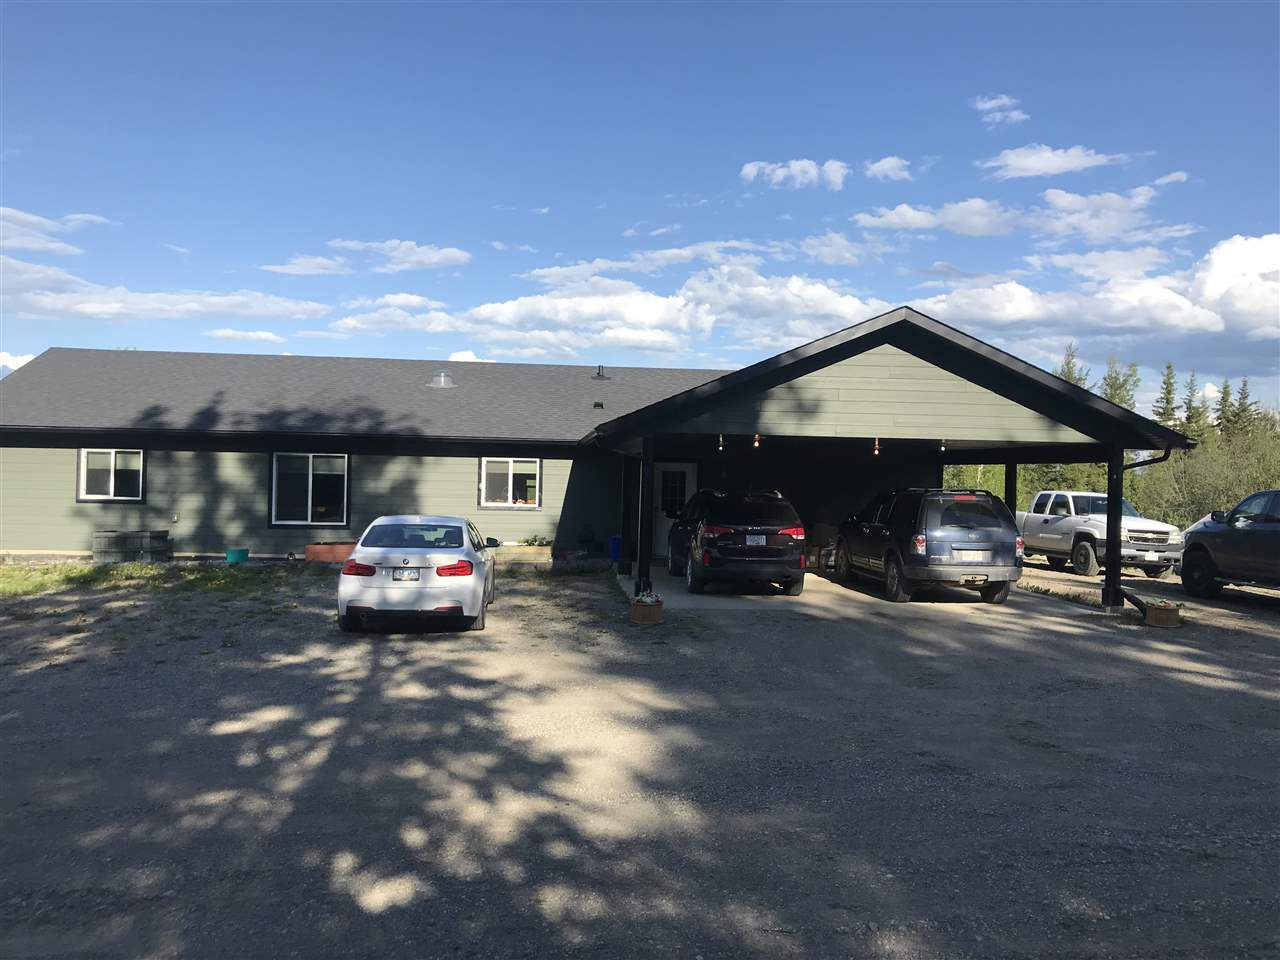 Main Photo: 19945 E MCBRIDE TIMBER Road: Upper Mud House for sale (PG Rural West (Zone 77))  : MLS®# R2373830